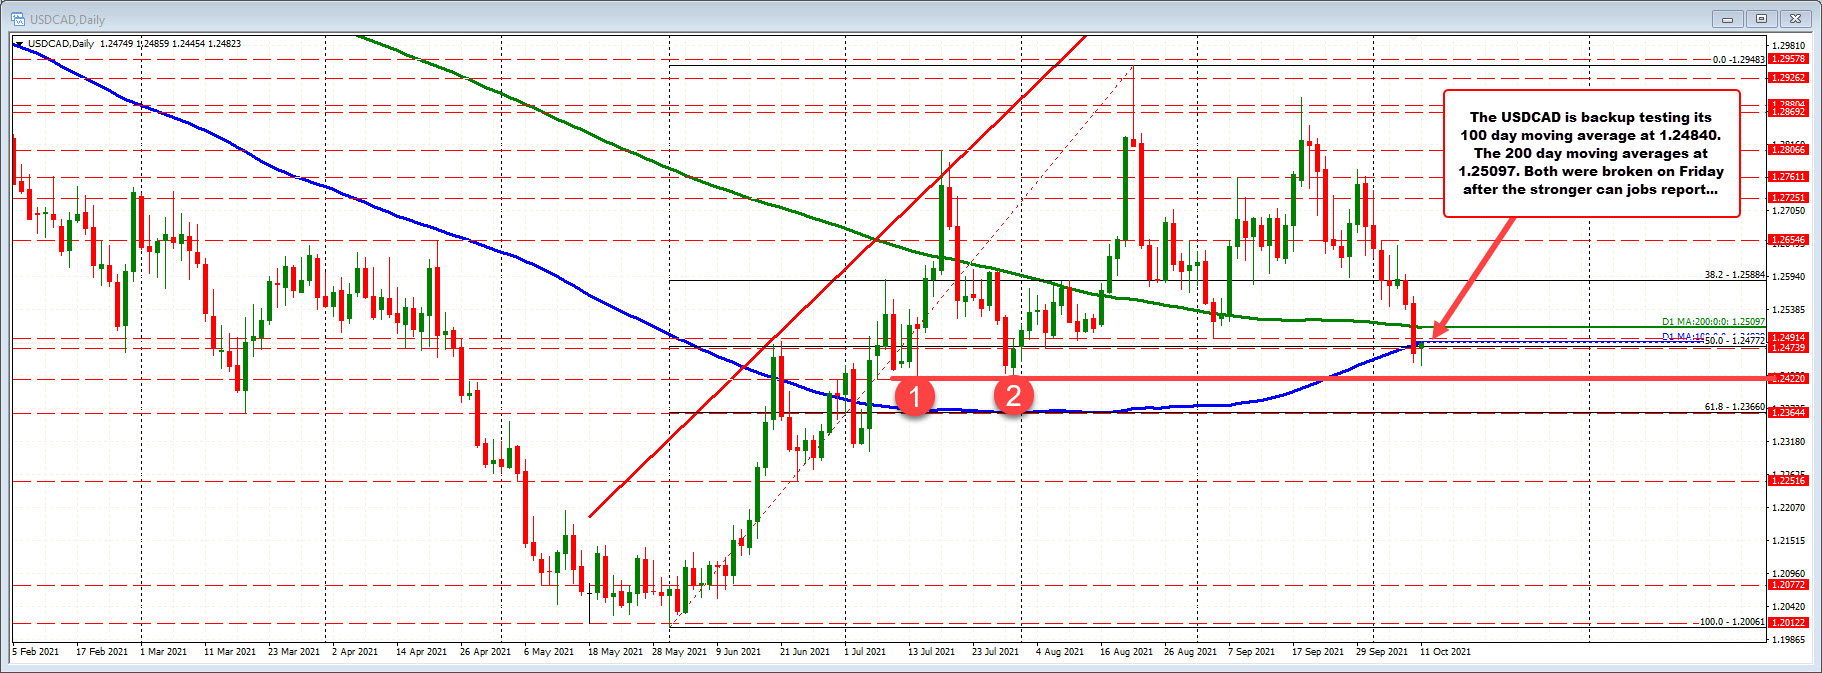 USDCAD retests the 100 day MA